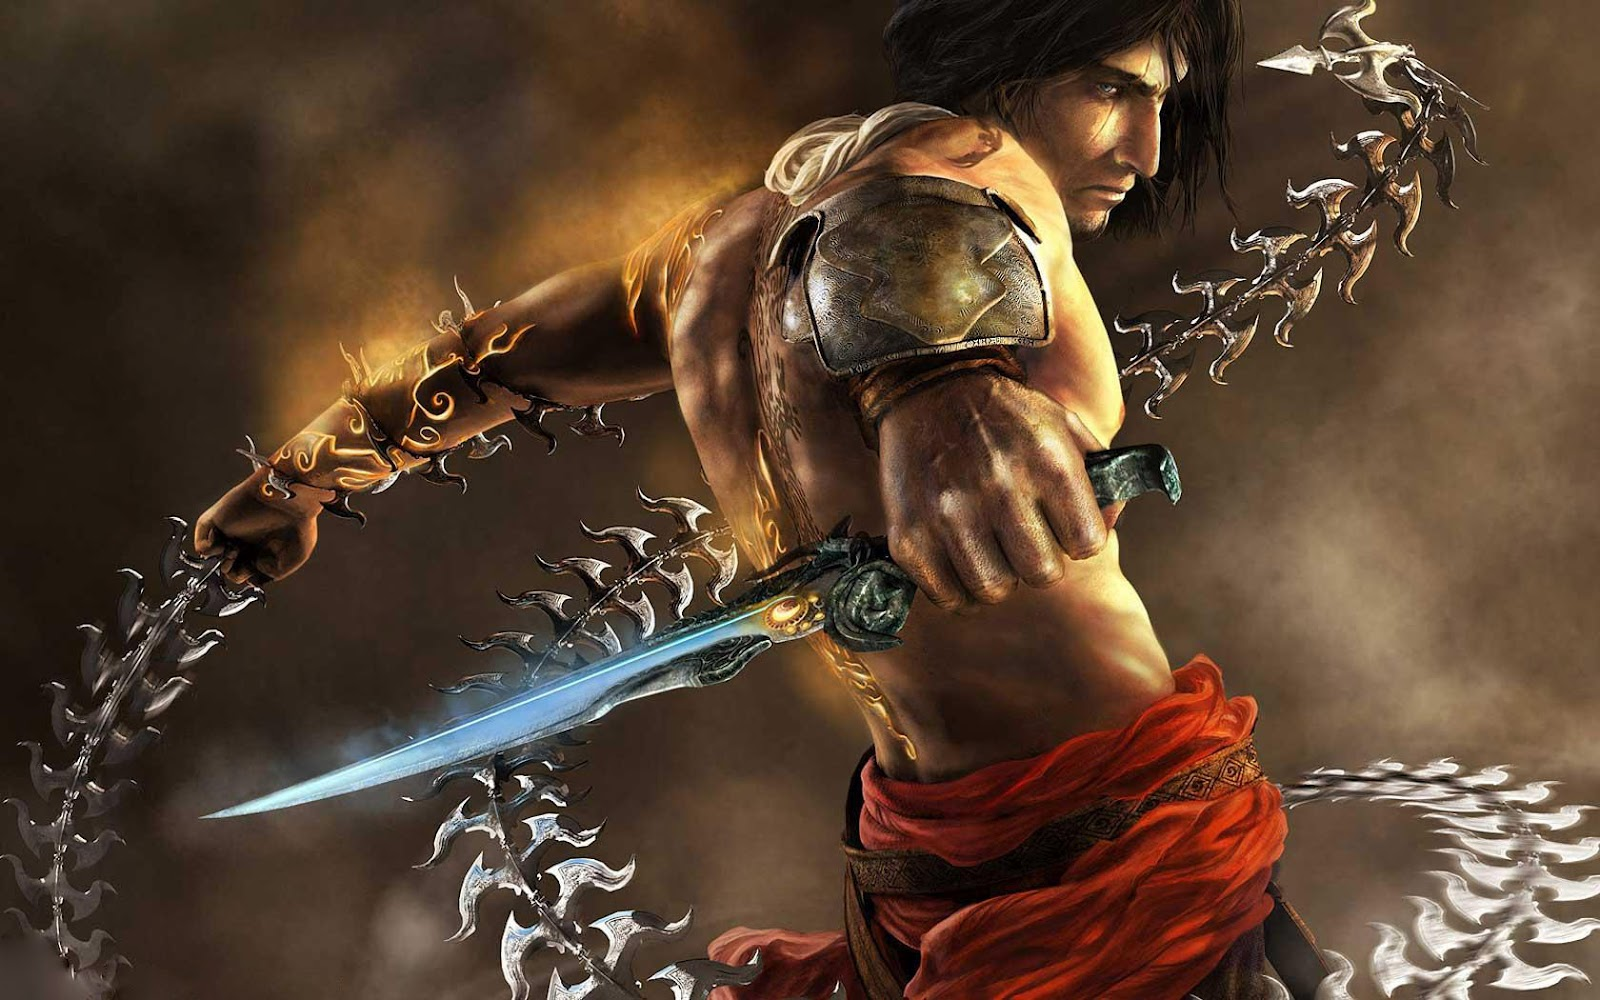 Free Download: Prince Of Persia HD